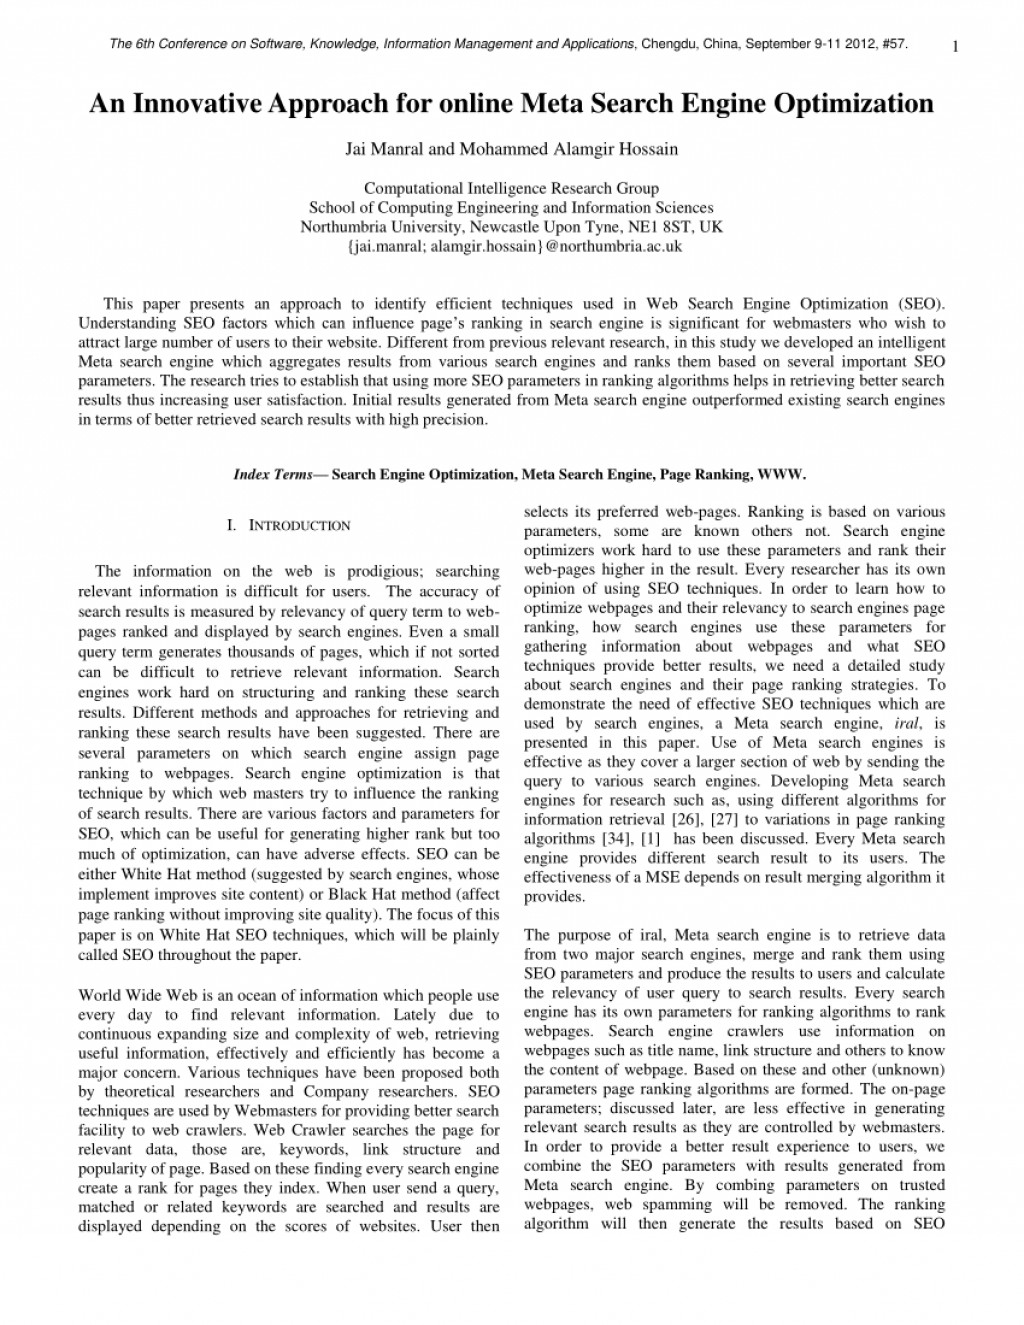 010 Meta Search Engine Research Paper Formidable Large